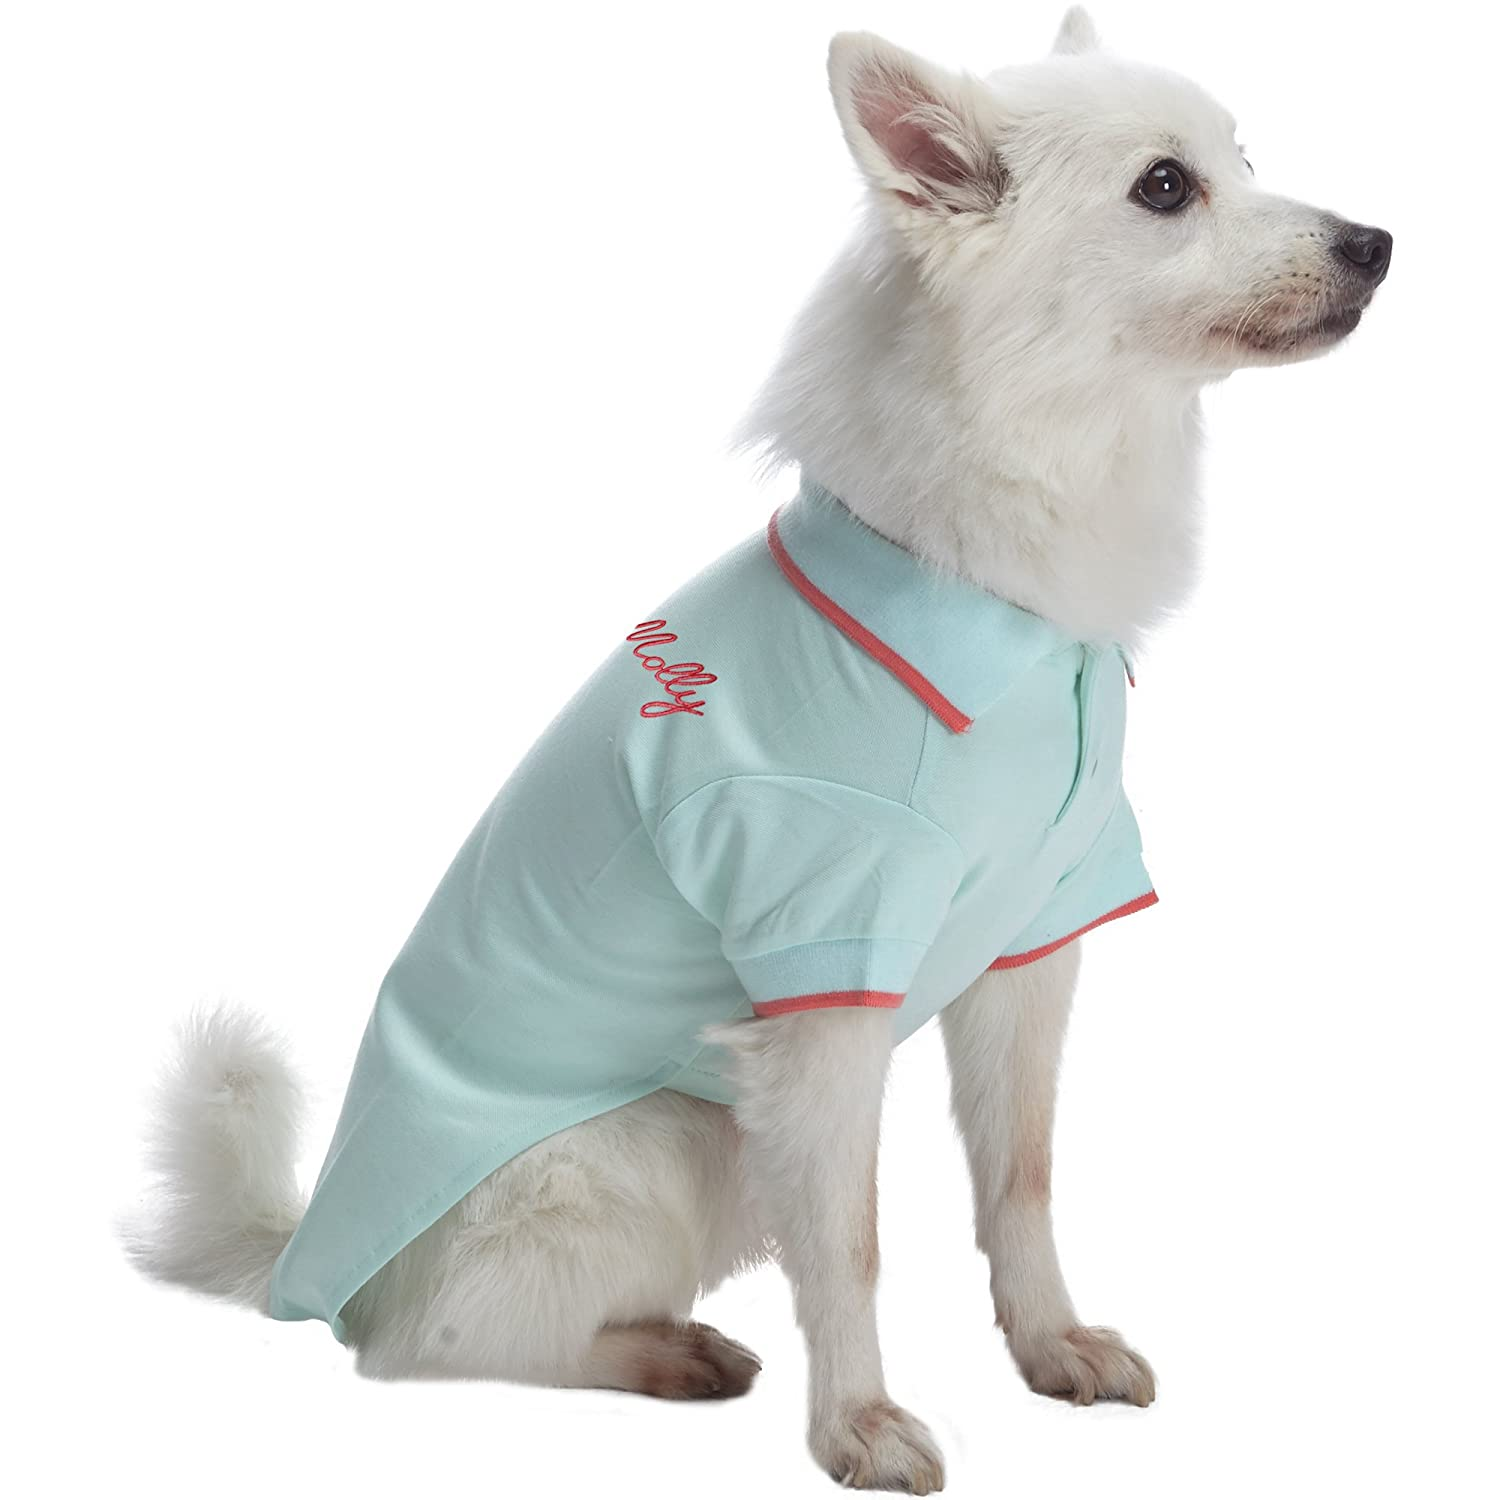 Blueberry Pet Back to Basic Cotton Blend Dog Polo Shirt in Navy and Rusty Red Back Length 16//41cm Pack of 2 Clothes for Dogs